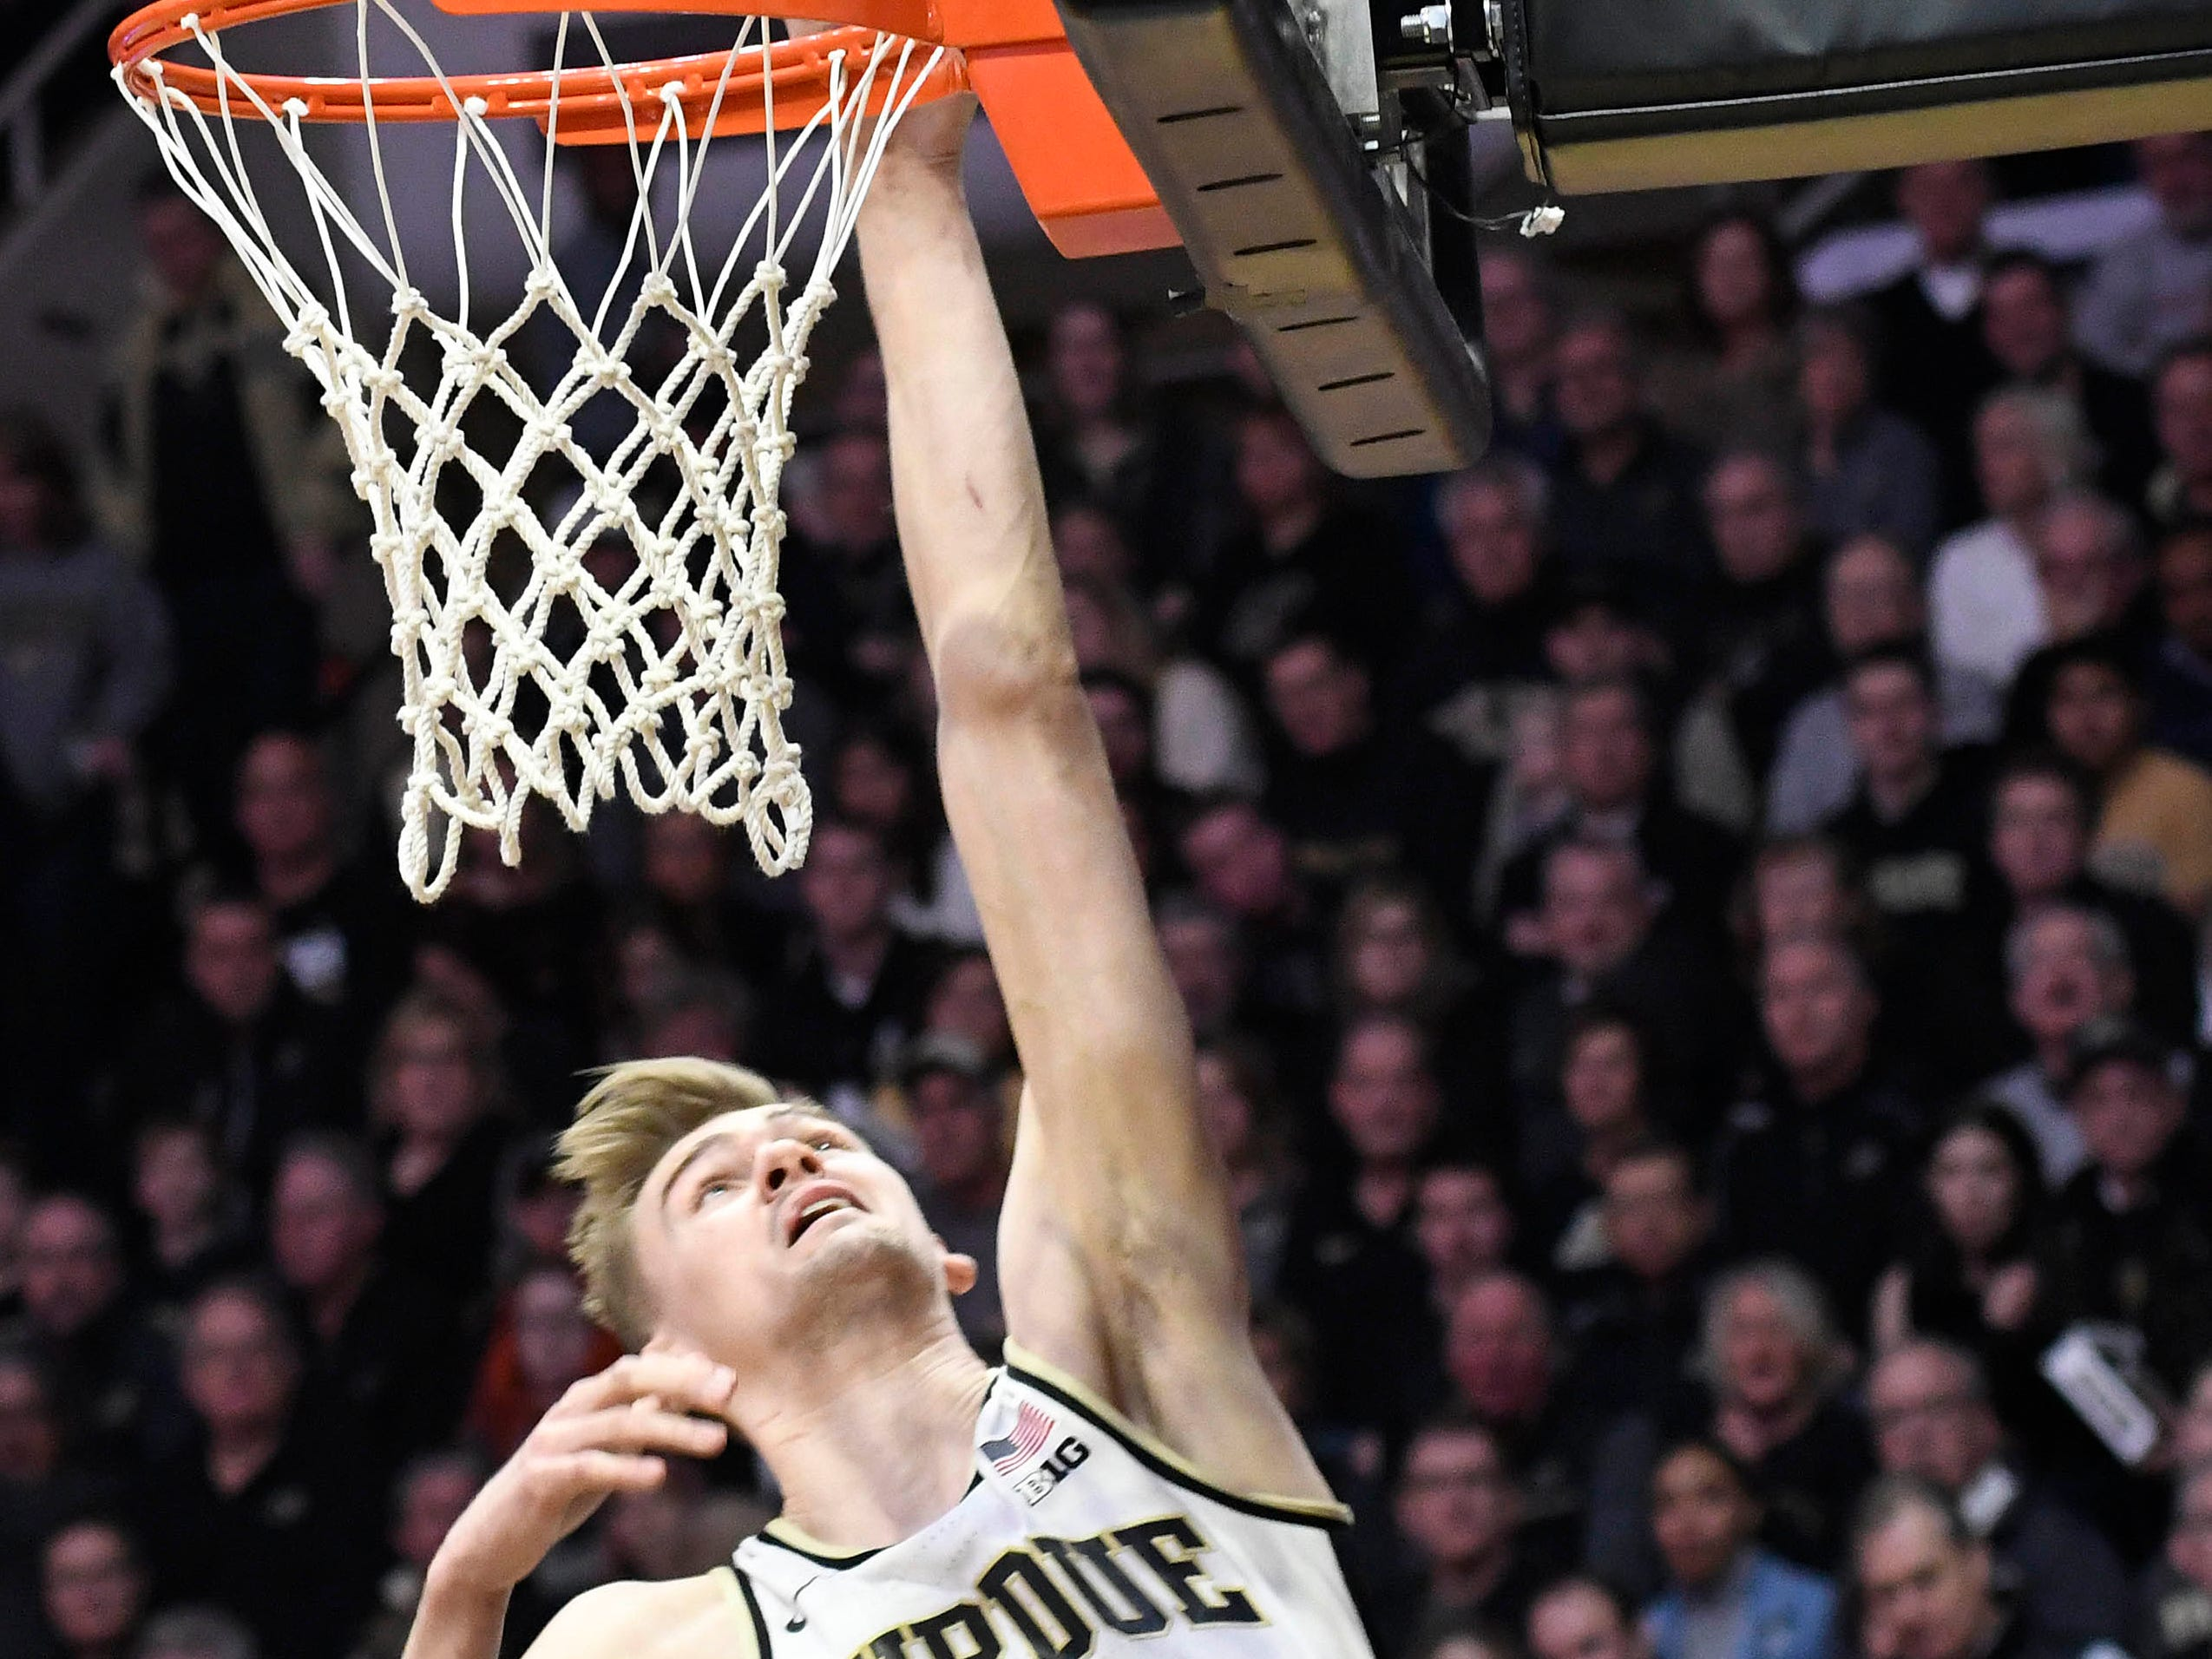 Mar 2, 2019; West Lafayette, IN, USA; Purdue Boilermakers center Matt Haarms (32) goes for a layup in the first half at Mackey Arena. Mandatory Credit: Sandra Dukes-USA TODAY Sports